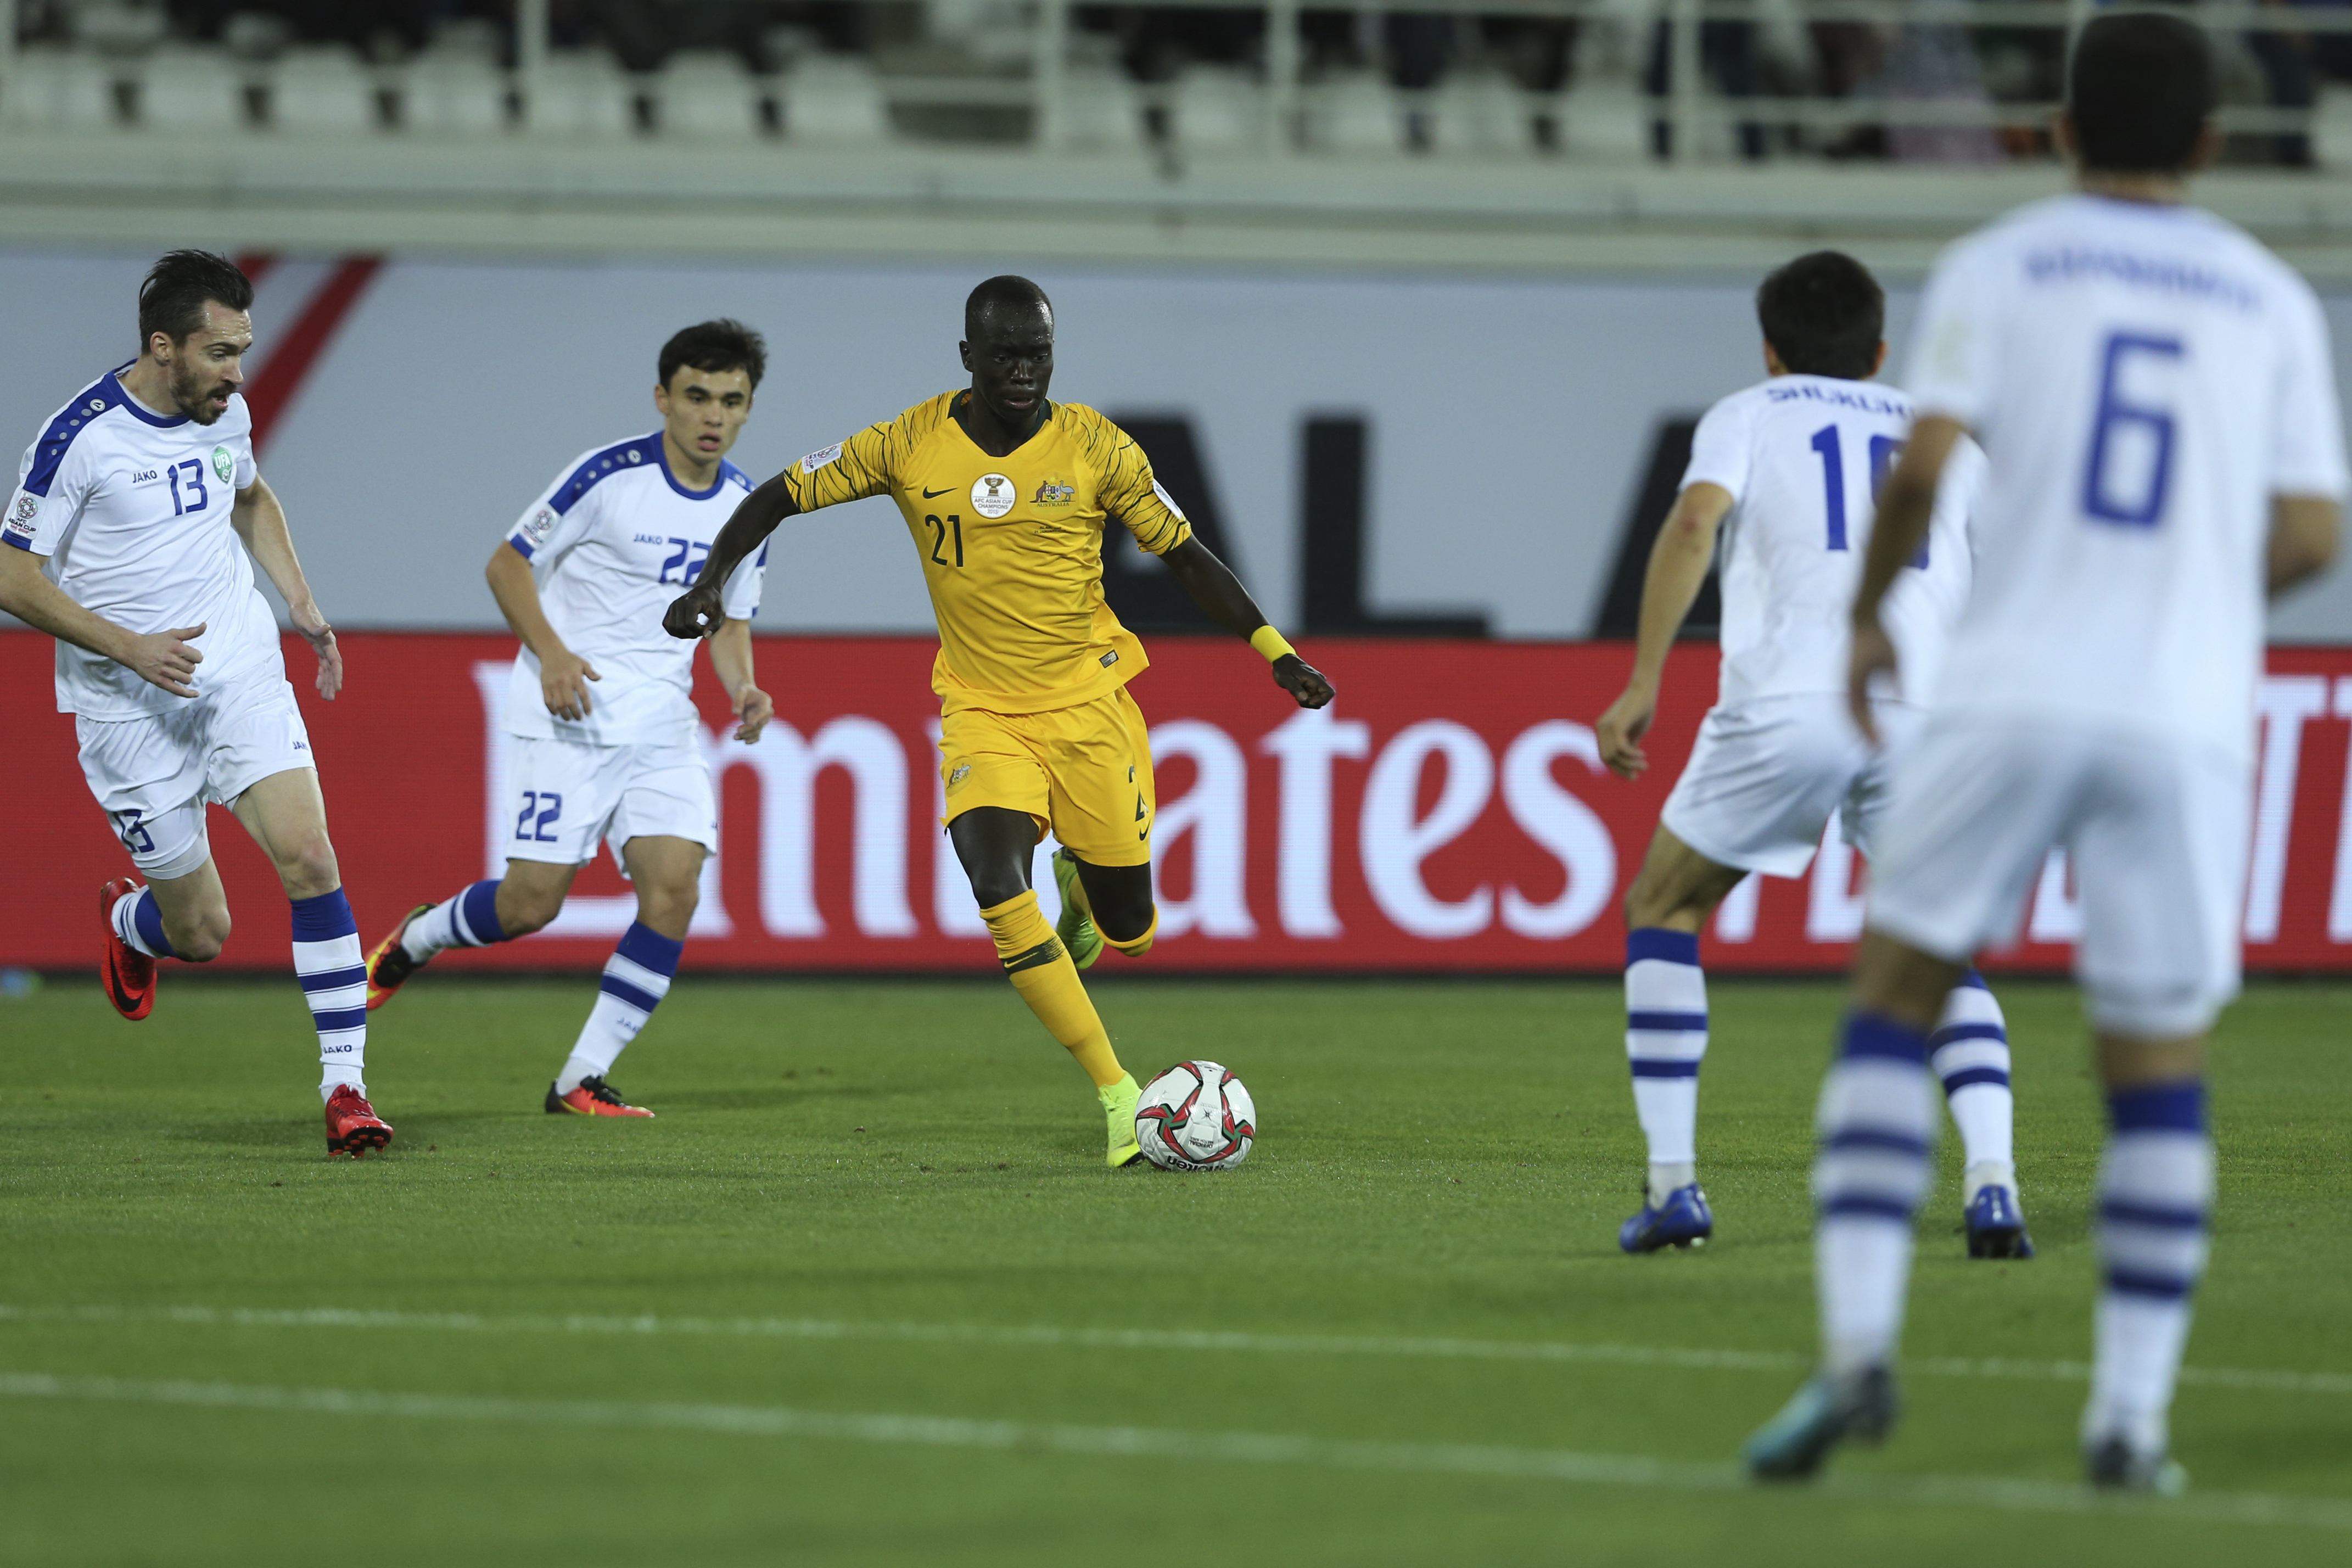 Sister of Australia forward Awer Mabil dies in car accident